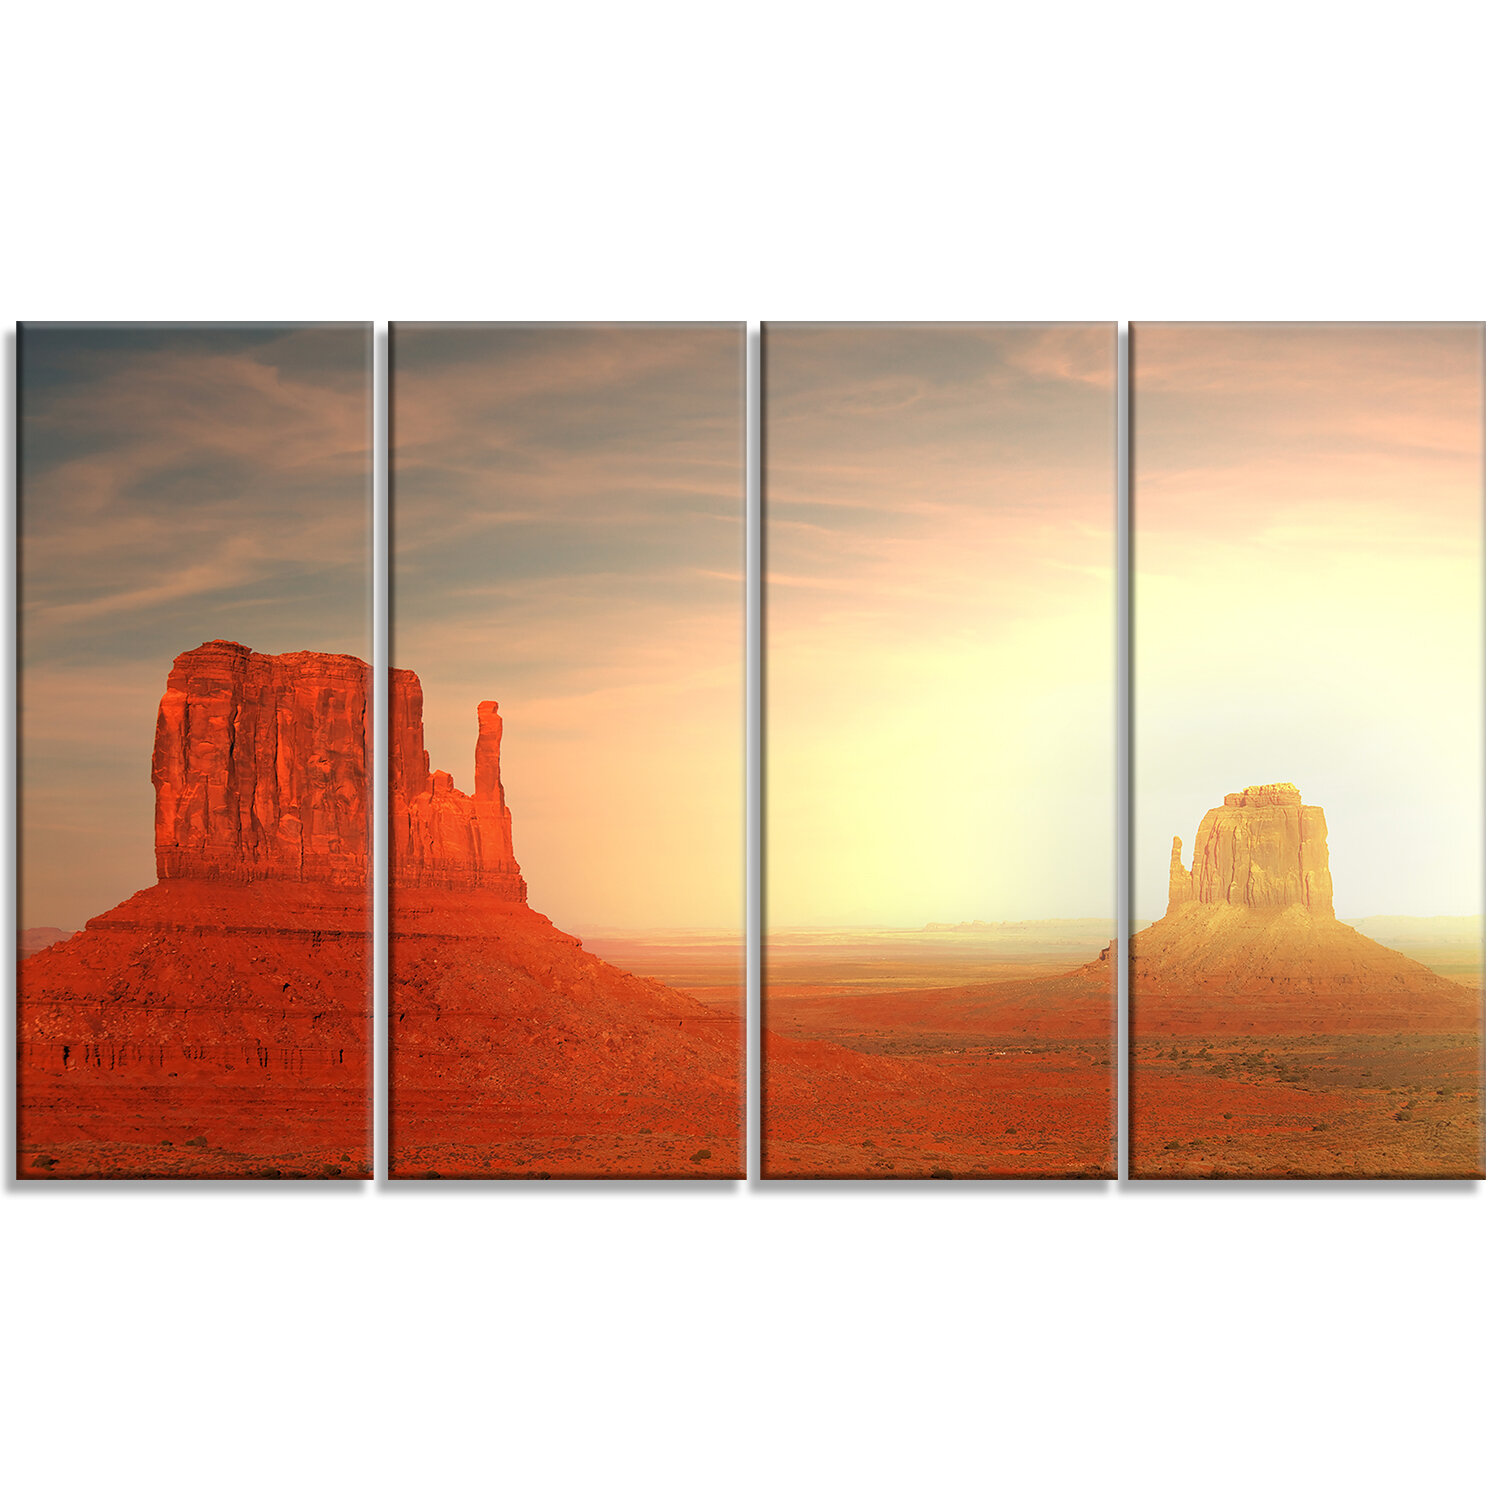 Designart Monument Valley Utah Usa 4 Piece Photographic Print On Wrapped Canvas Set Wayfair